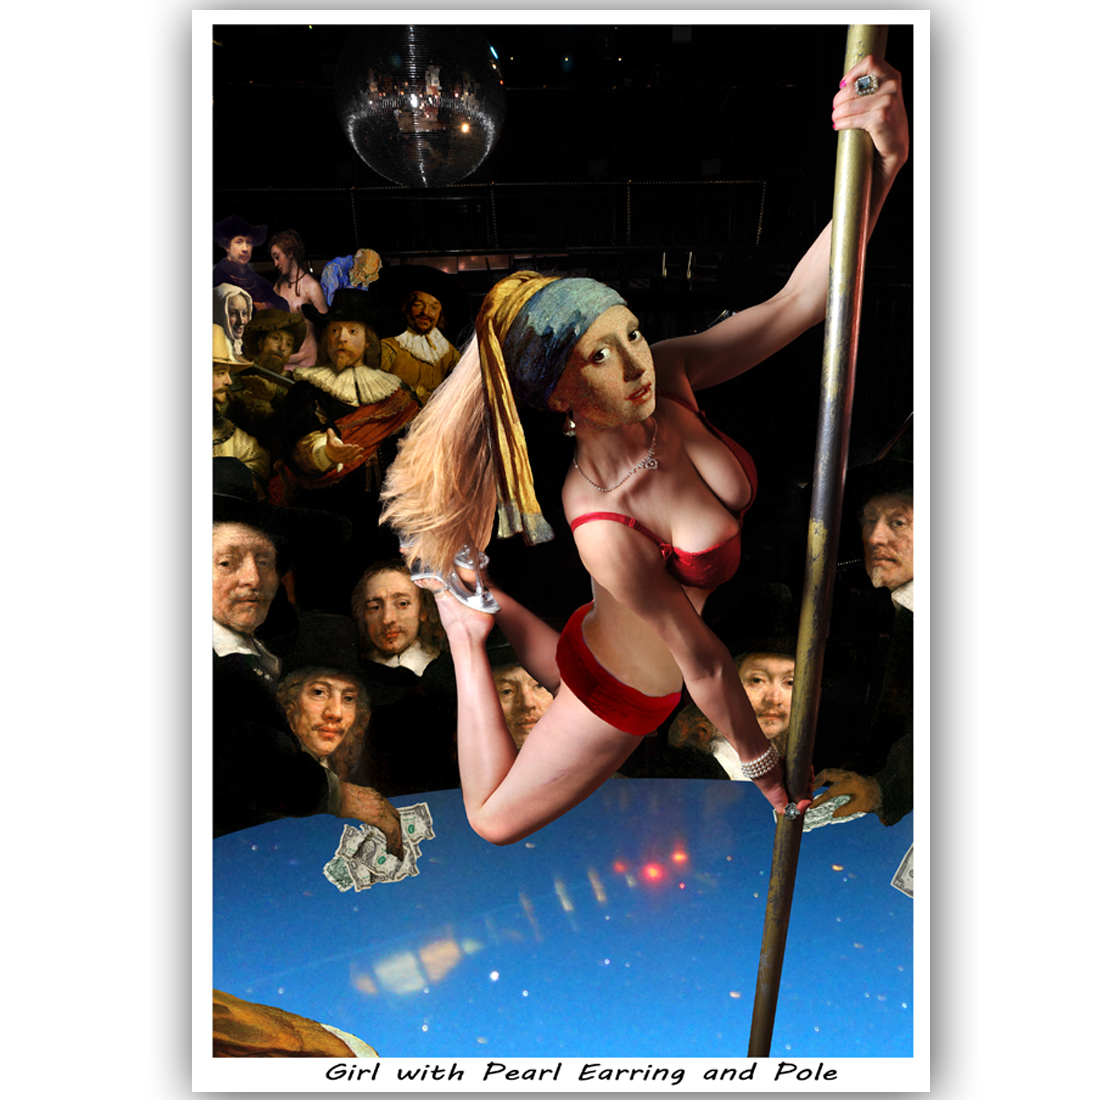 Girl with Pearl Earring and Pole